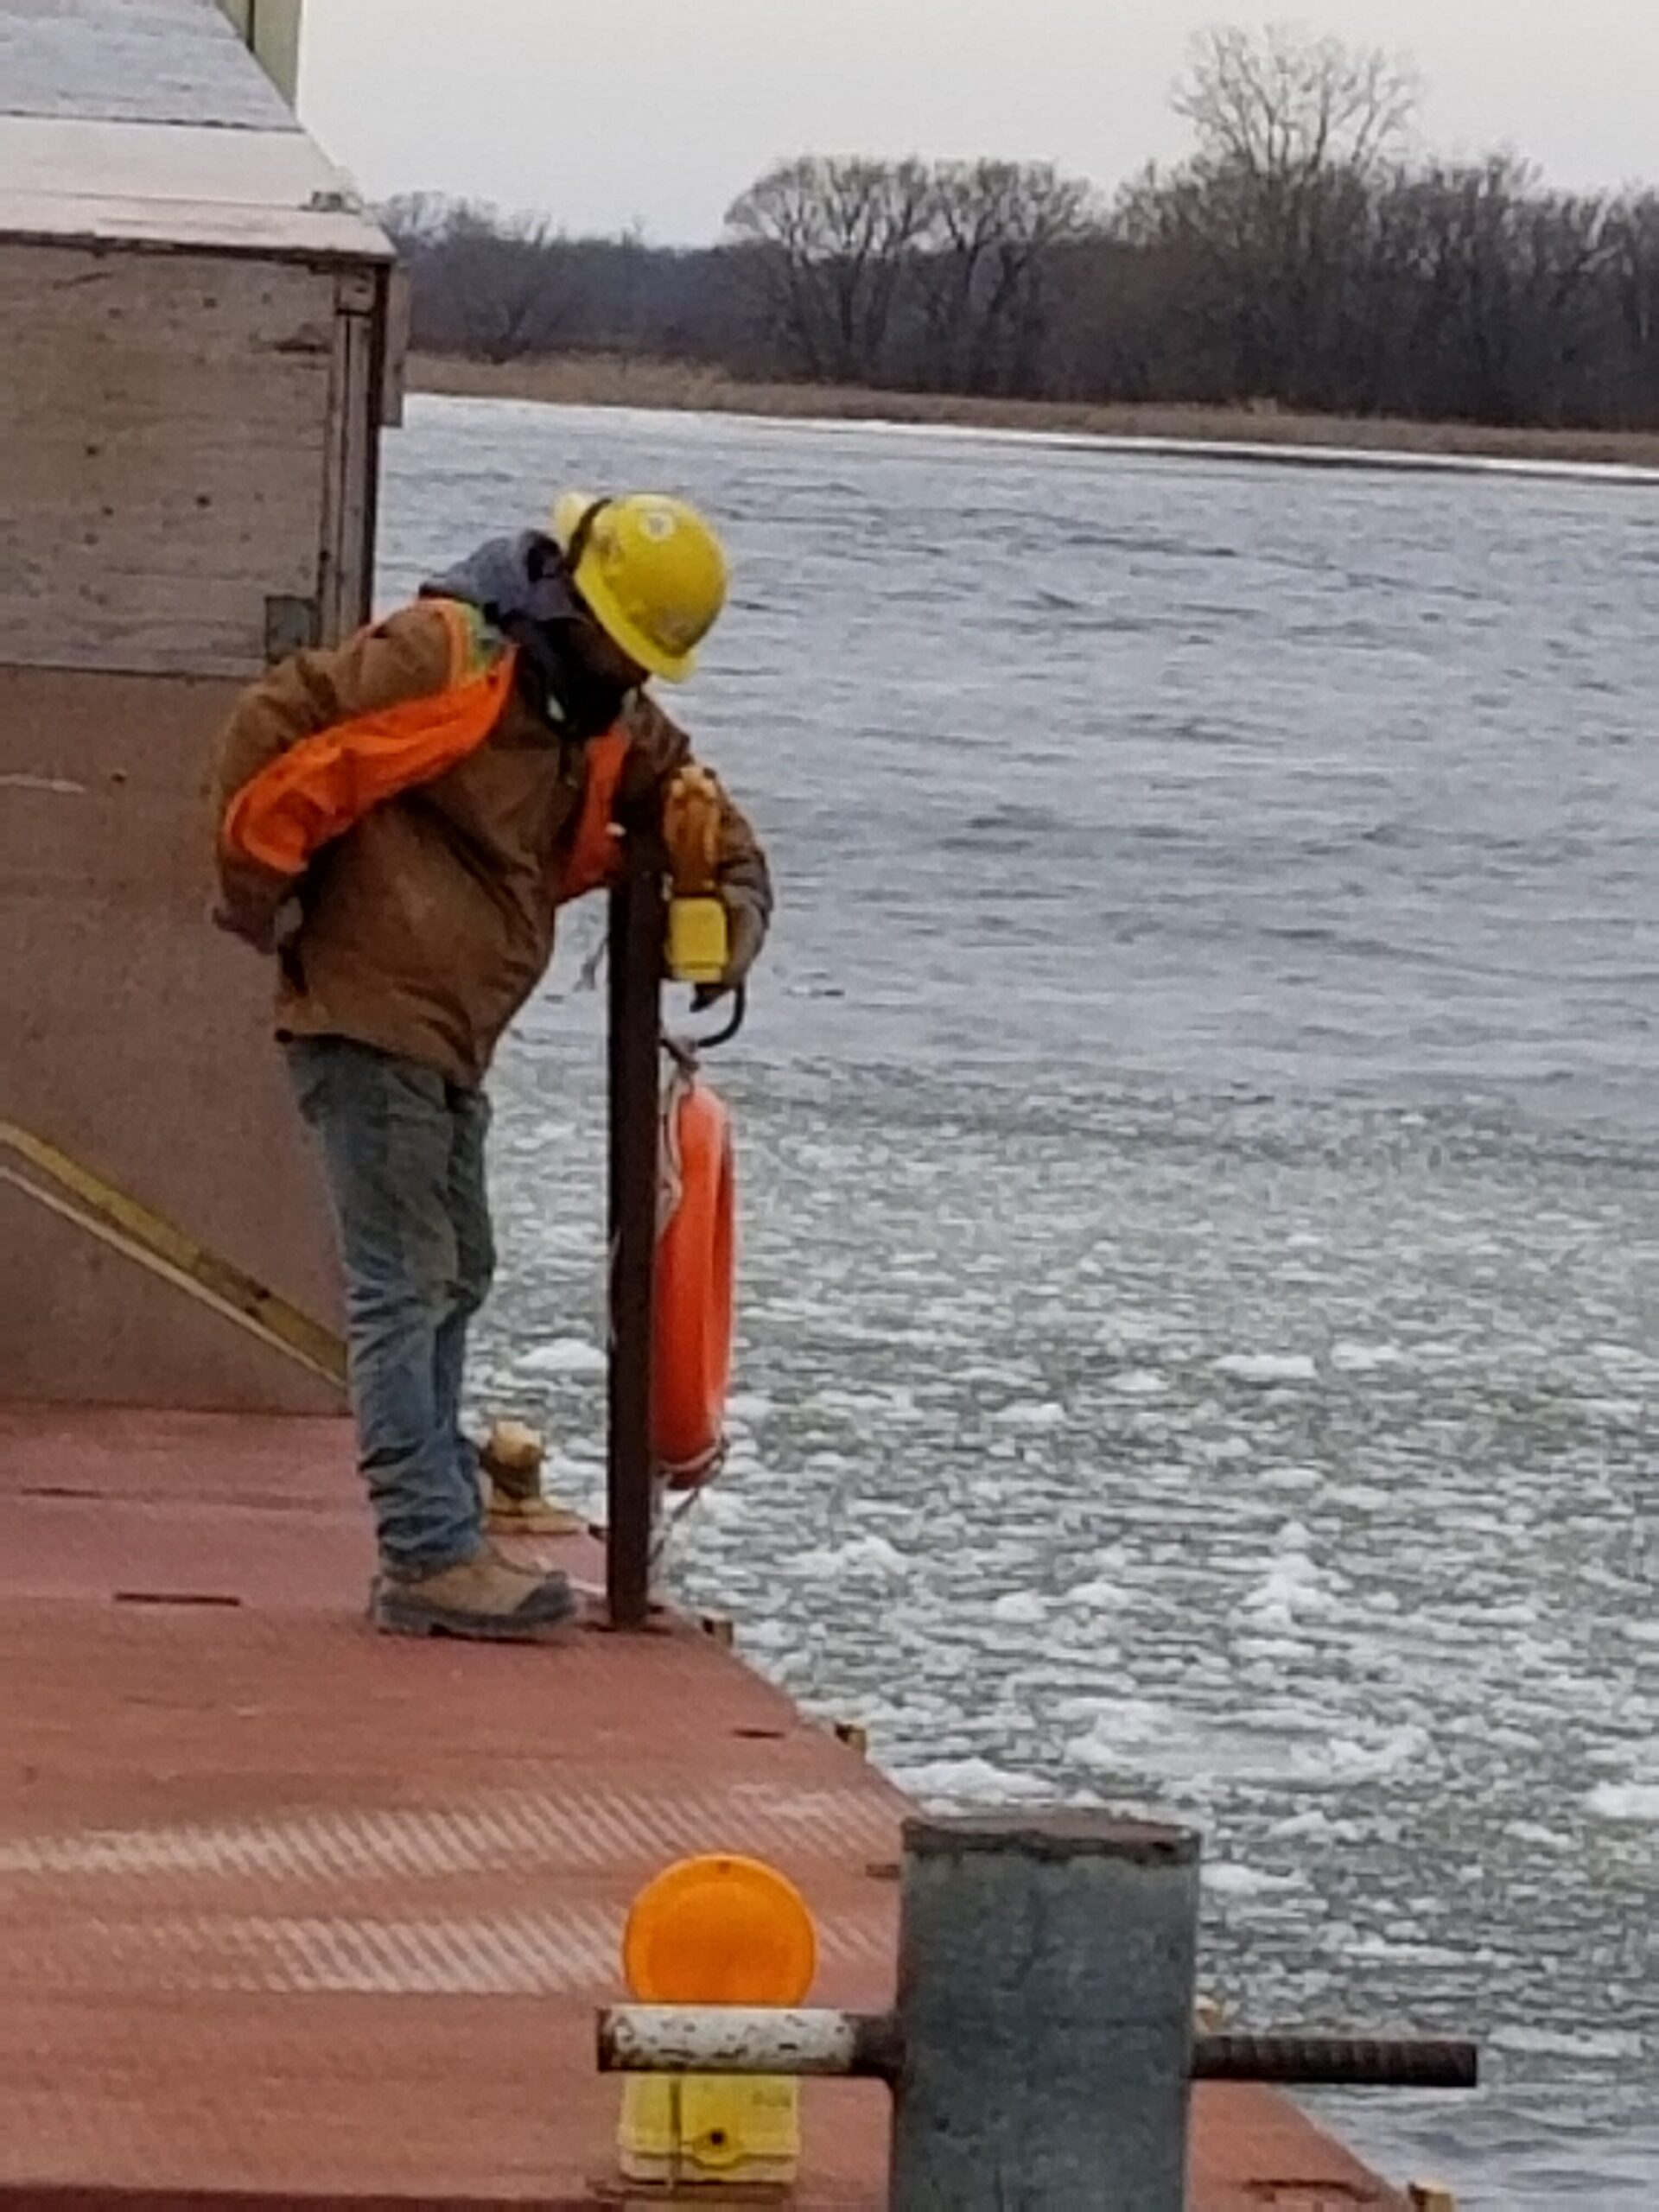 Installing beacon lights on the barges